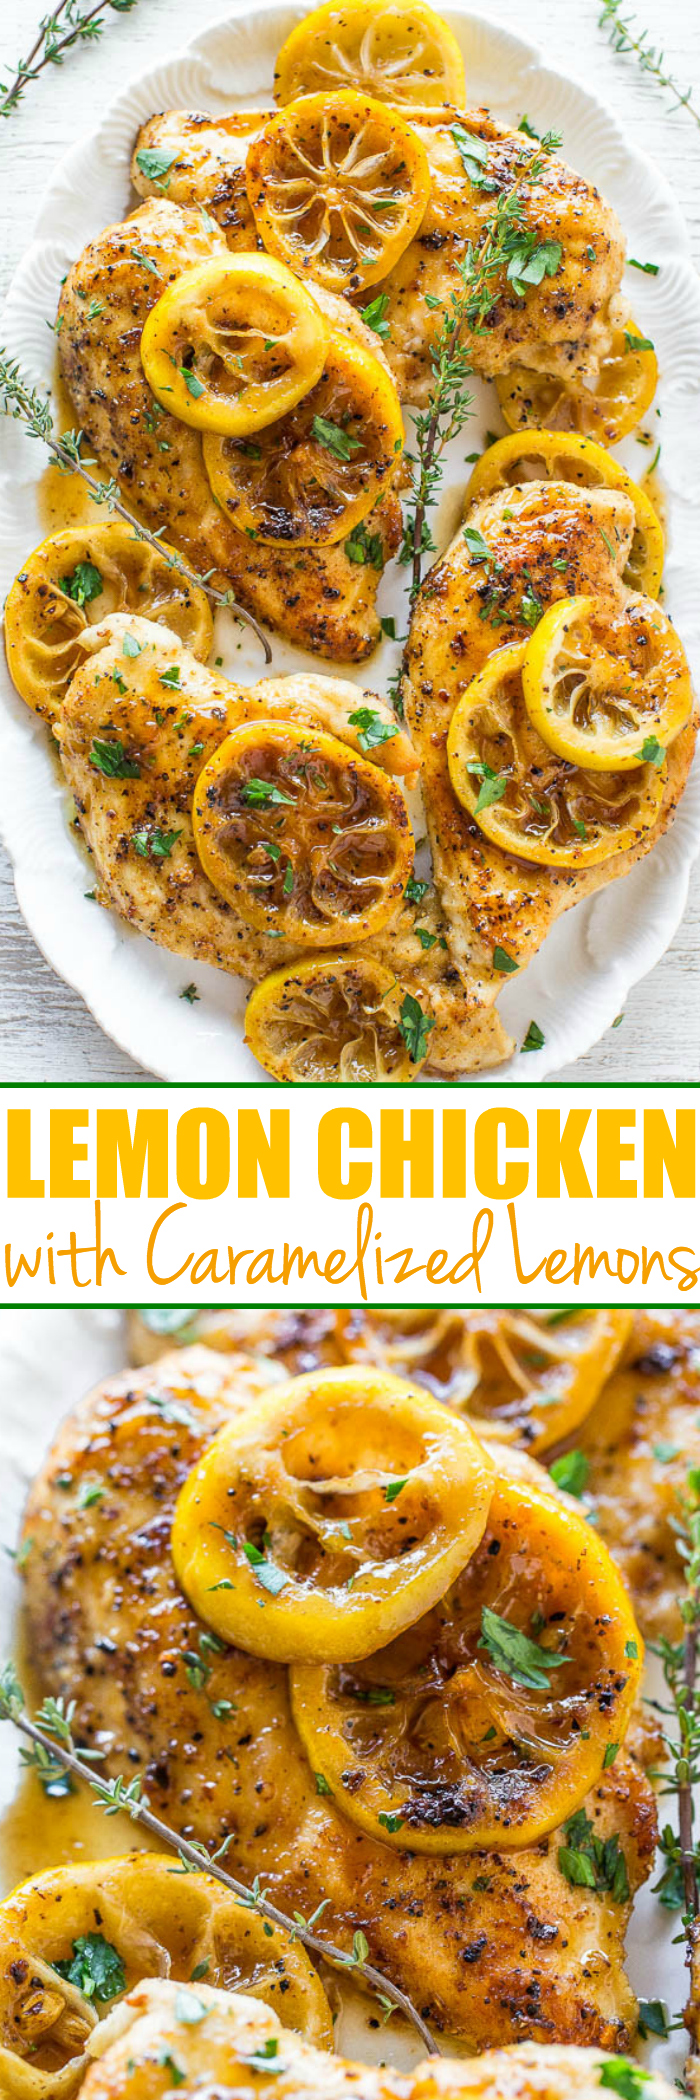 Easy Lemon Chicken with Caramelized Lemons - If you like lemons you're going to love this very lemony LEMON chicken!! Easy, healthy, ready in 20 minutes, and bursting with bold lemon flavor!!